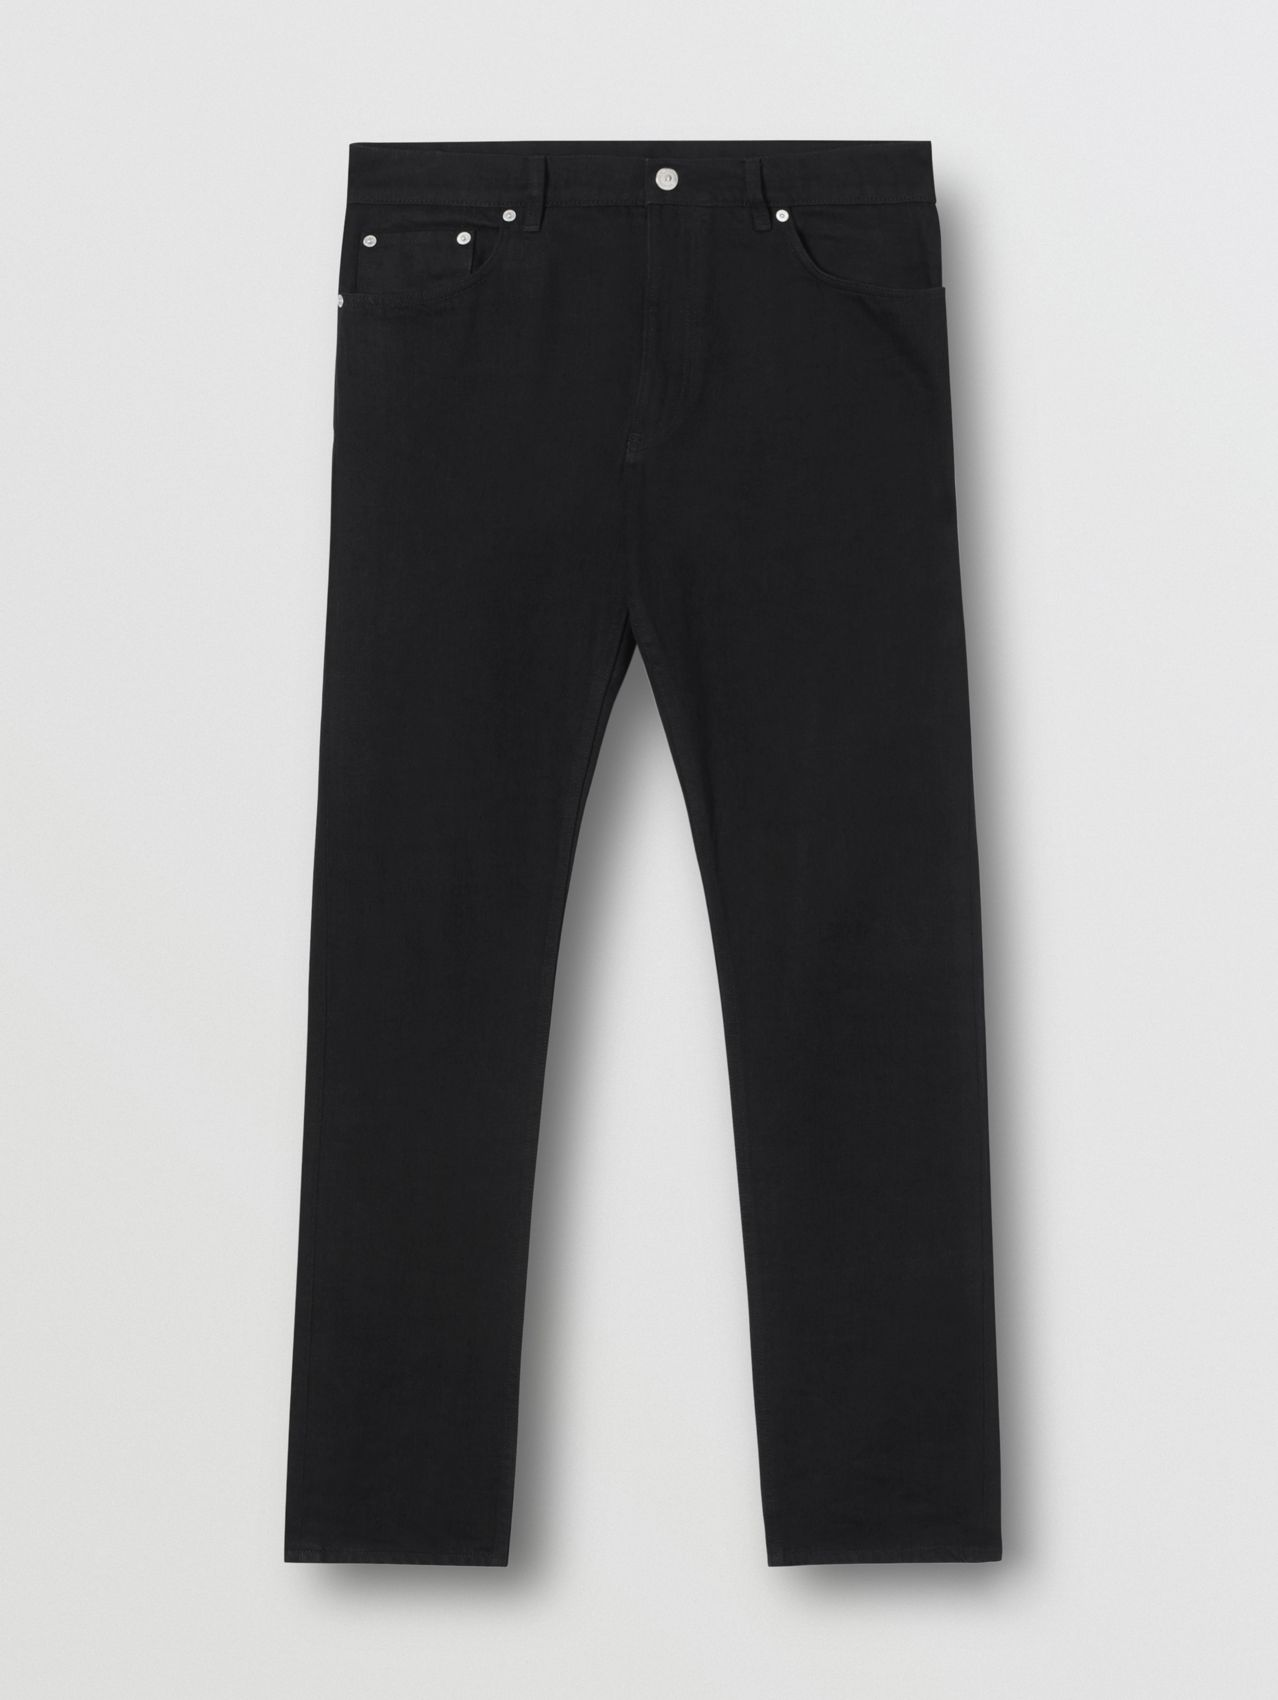 Straight Fit Japanese Denim Jeans (Black)